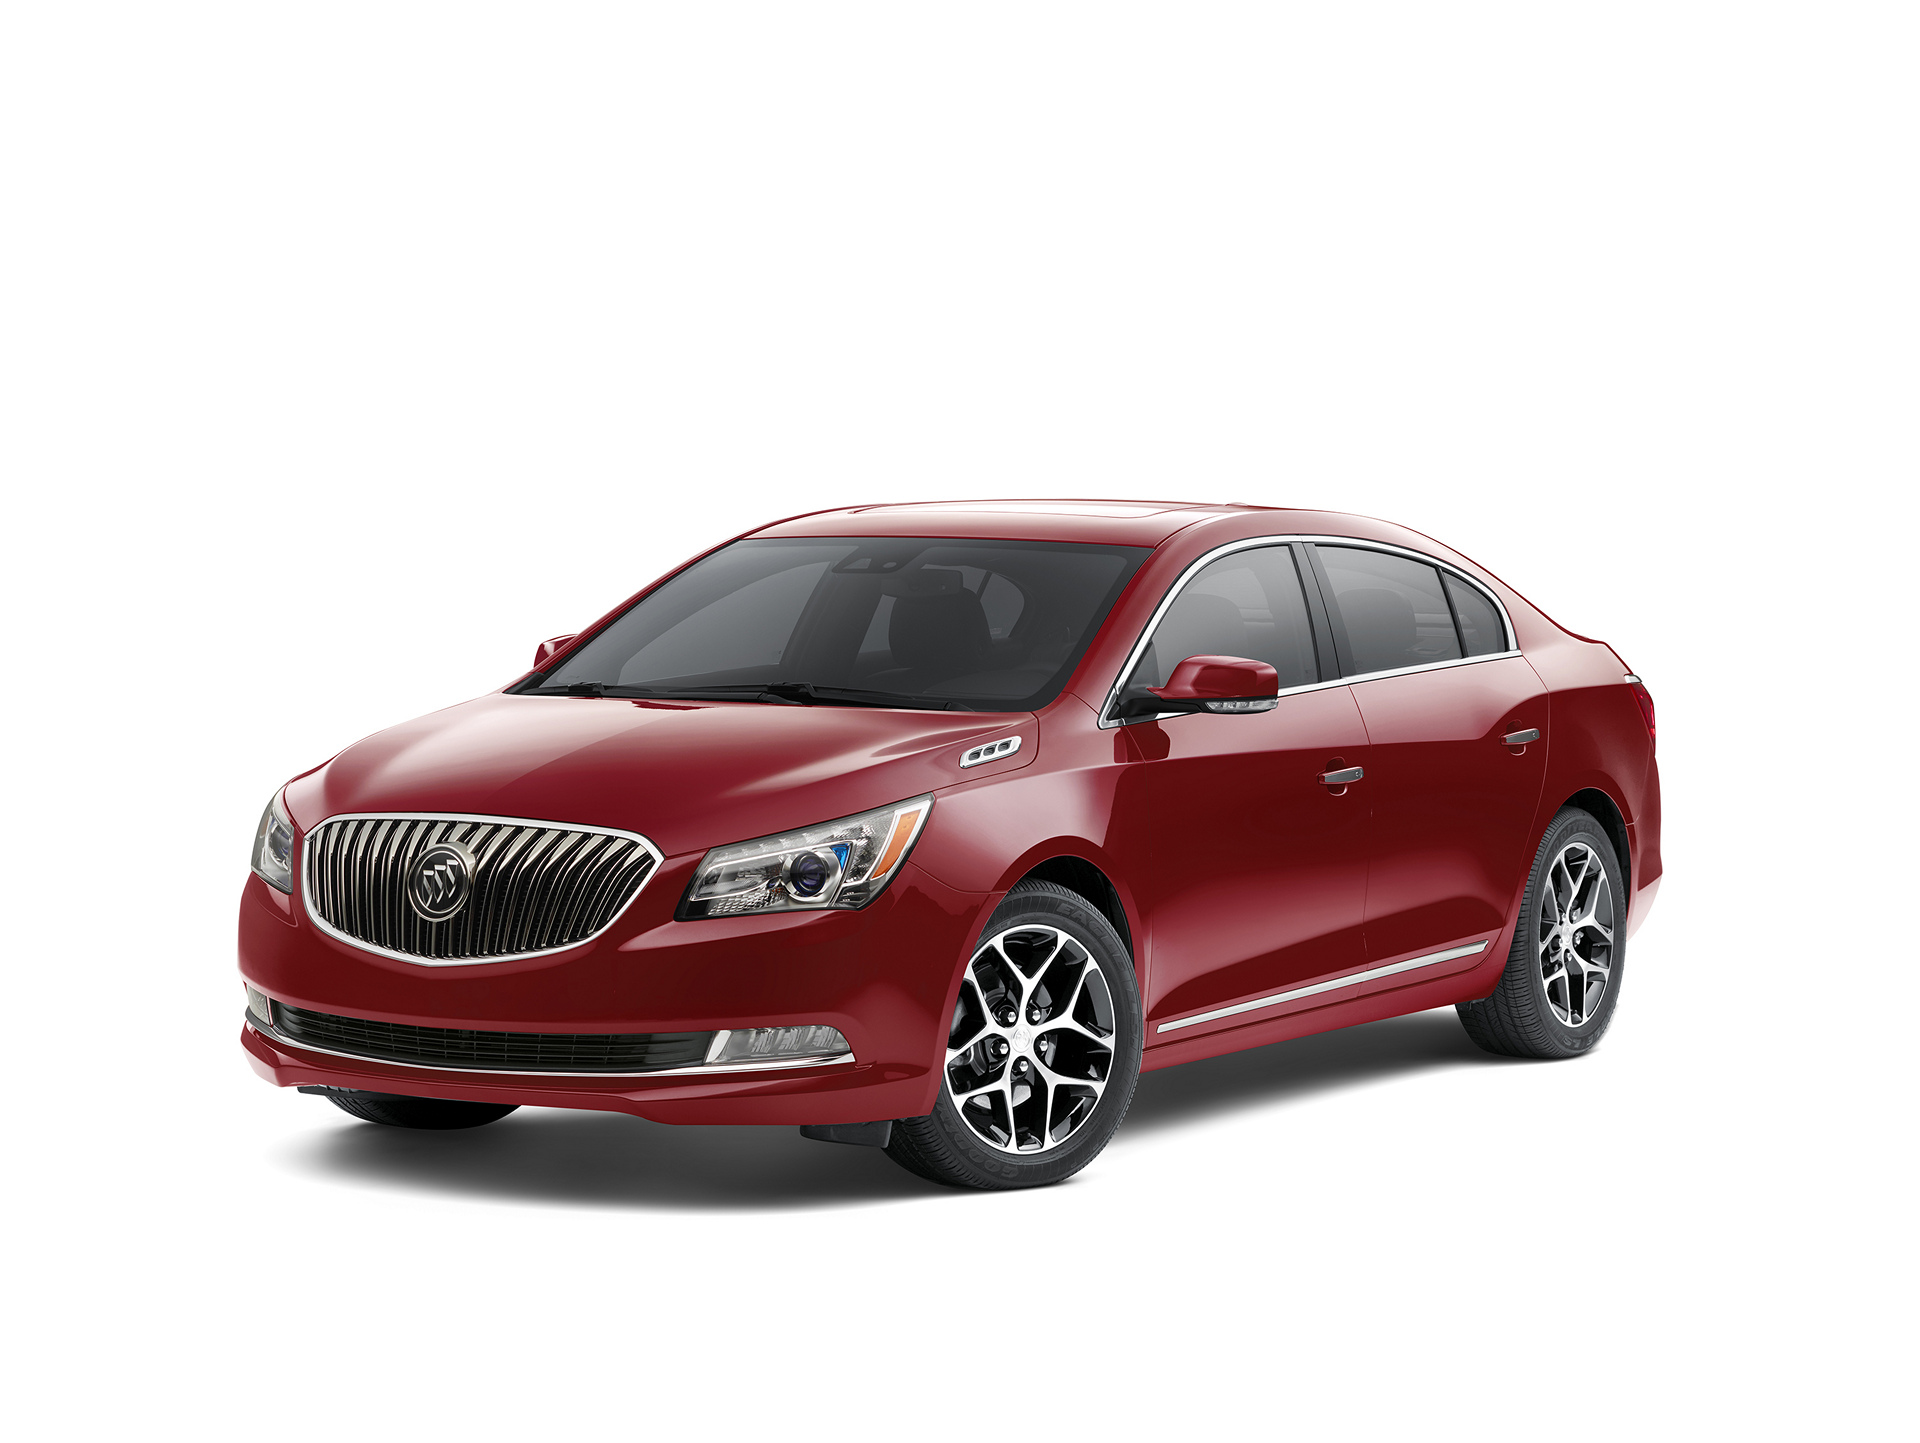 Regal Led Headlamp 2016 Buick Lacrosse Review Carrrs Auto Portal